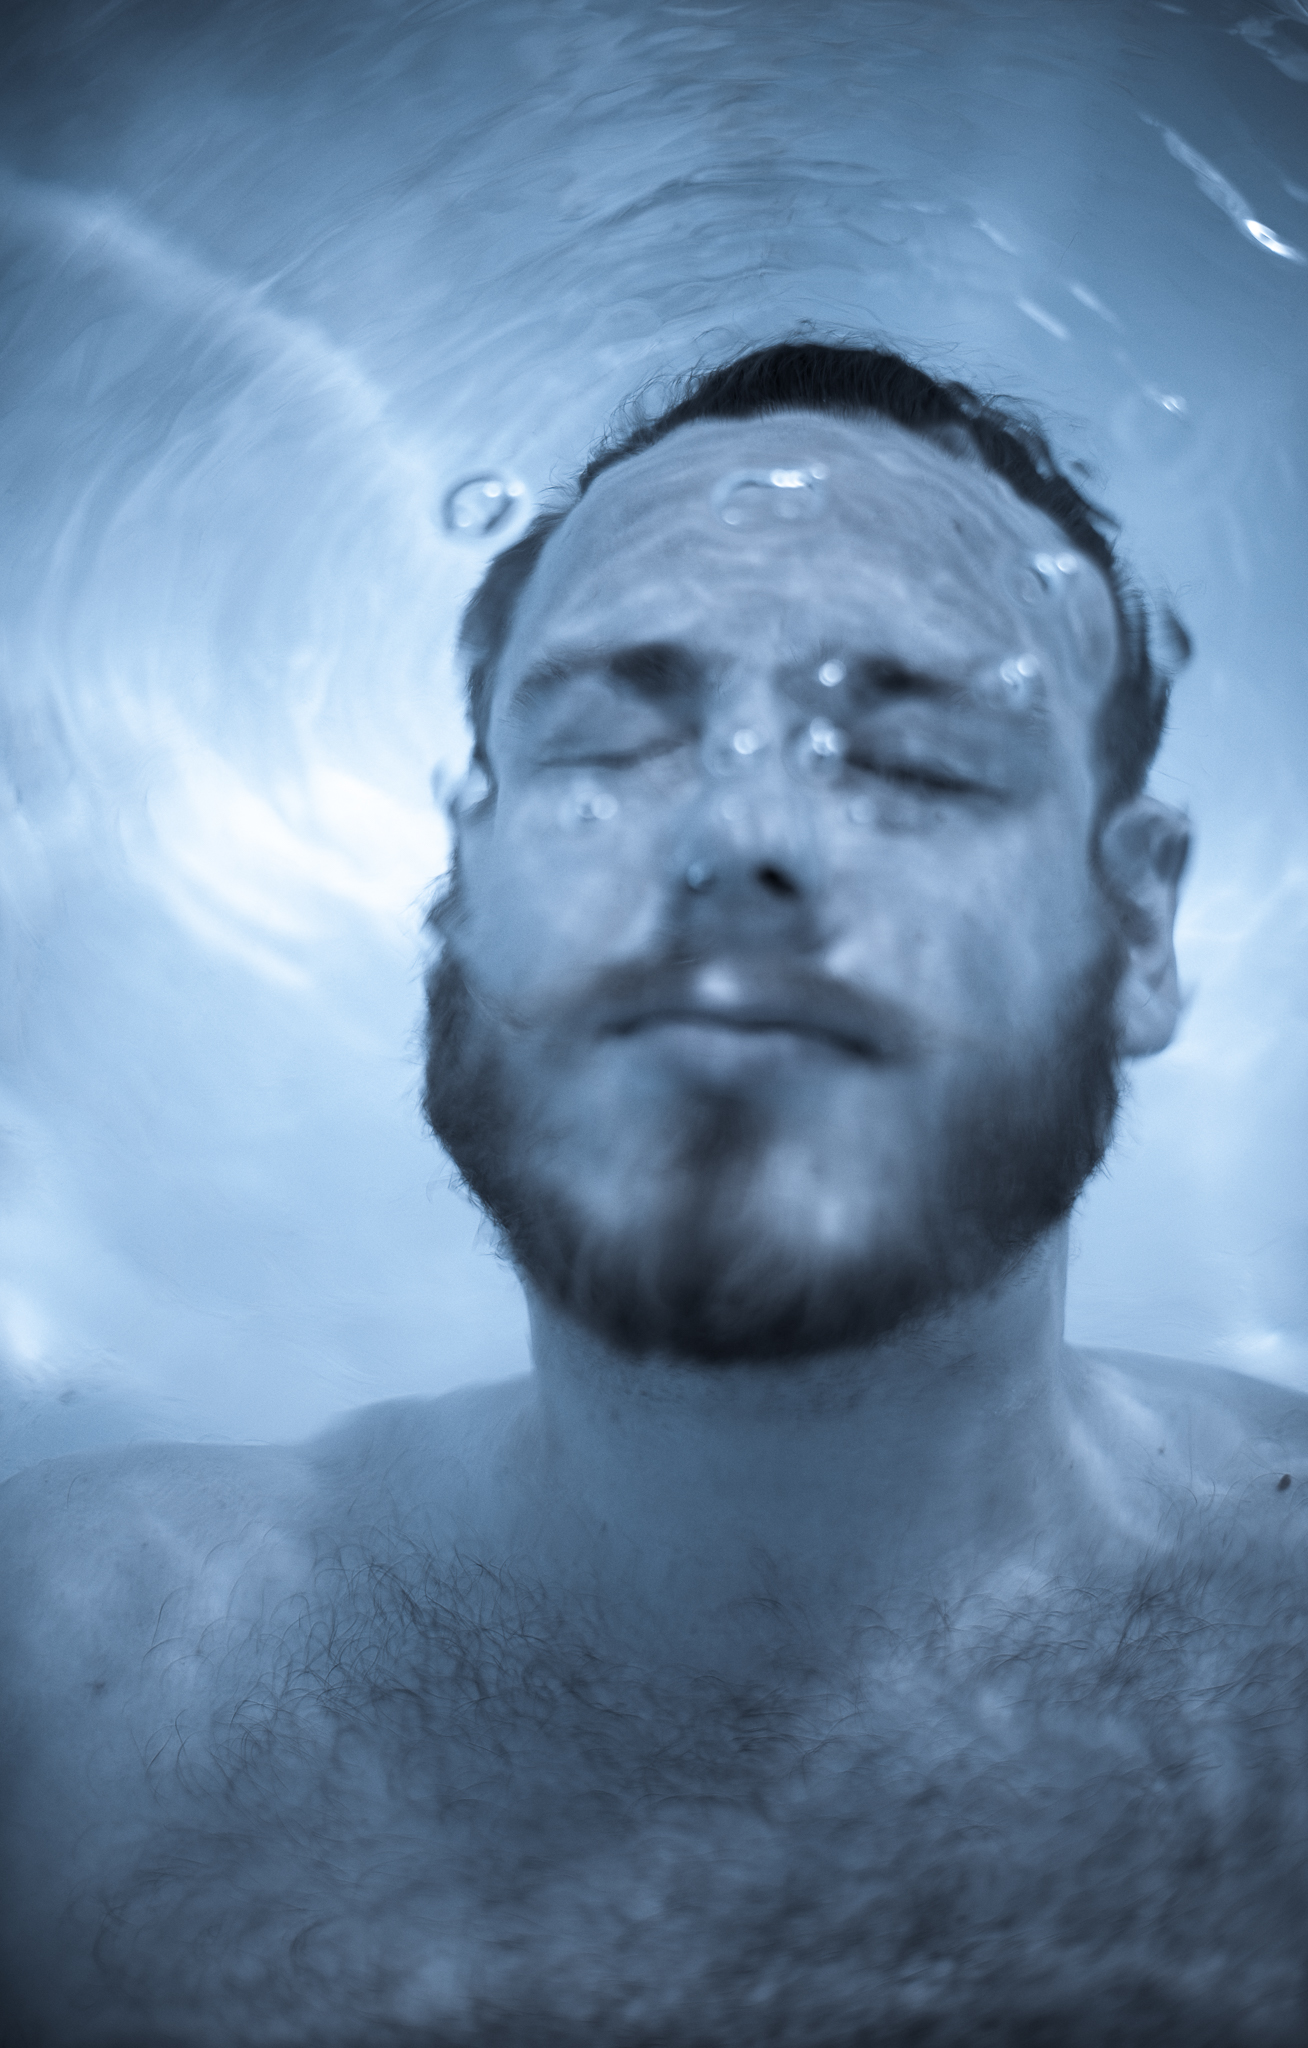 Ben Had This Idea Of Underwater Photos At The Pool...This Is My Interpretation Of His Idea...